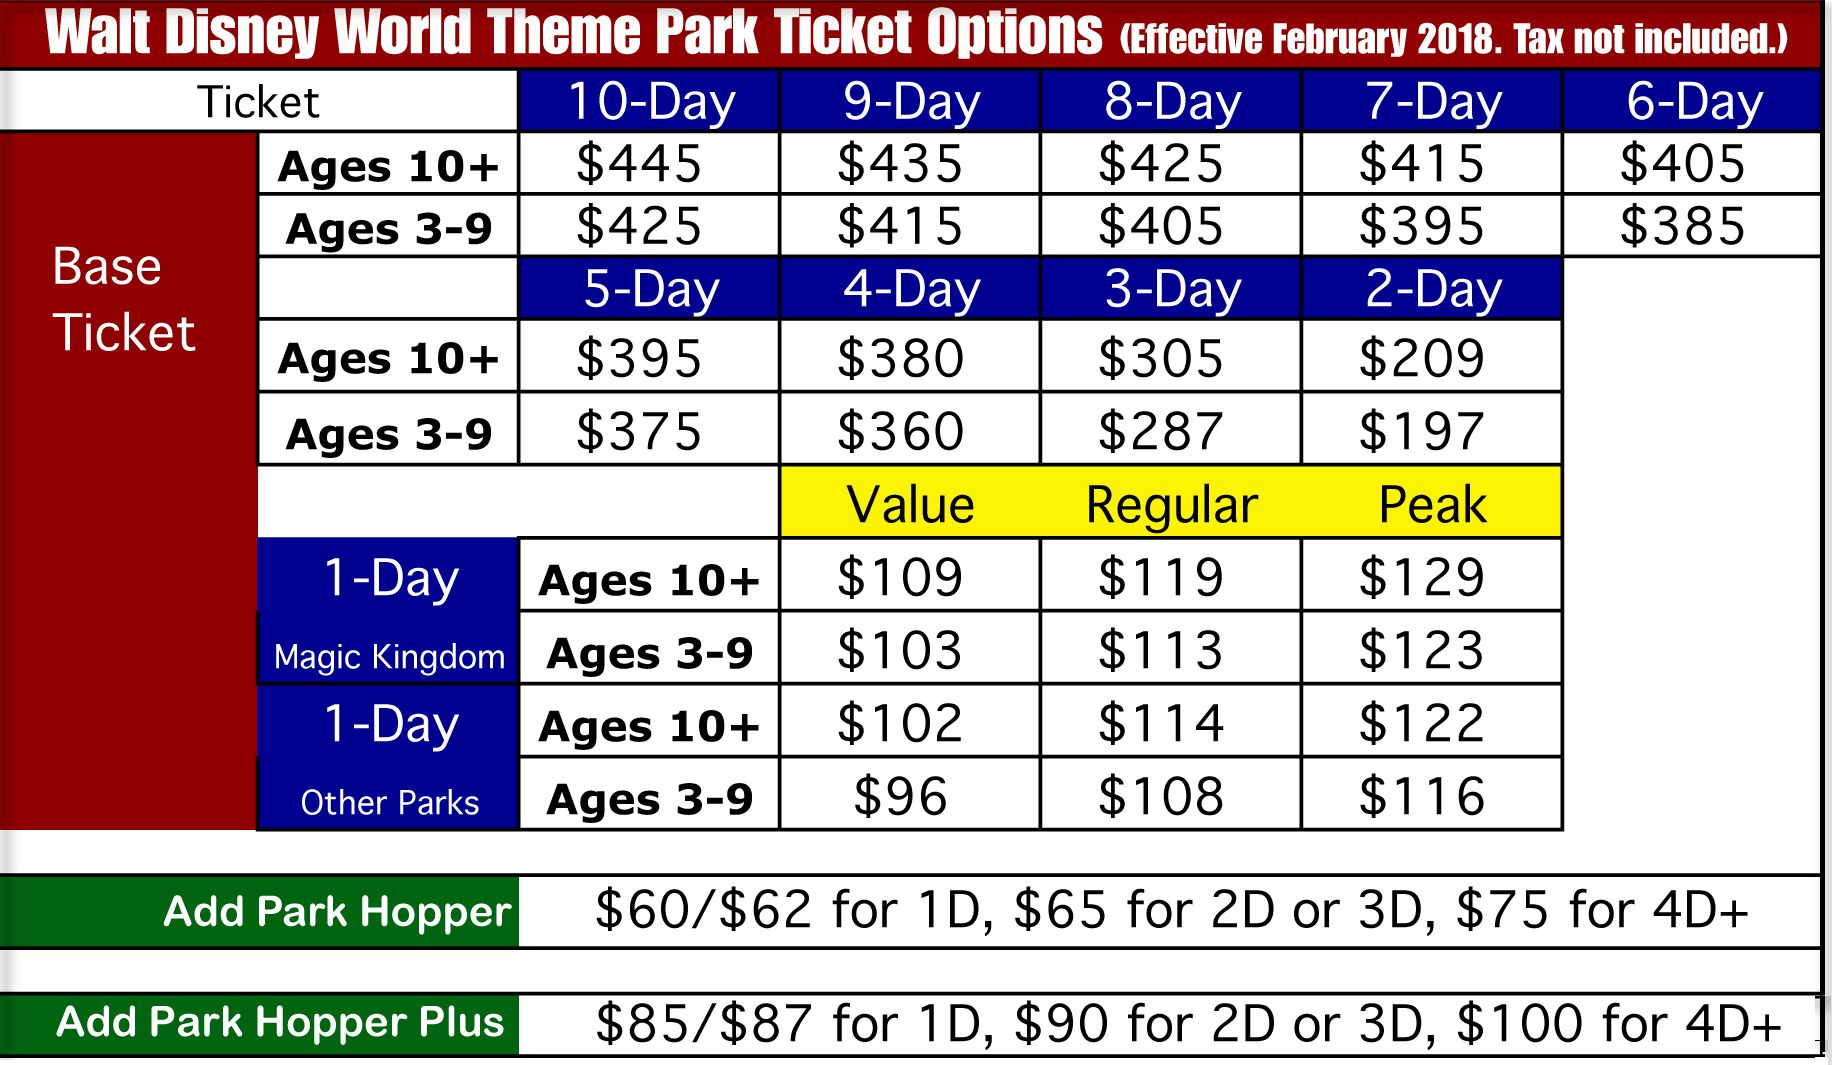 Walt Disney World Ticket Discounts. LAST UPDATE: 11/5/ Disney World tickets are available discounted year-round, and we list all the best ways to get Disney World ticket deals. Multiple Disney World ticket discounts are available for the general public and even a few ways to get a discount on Disney World annual passes.